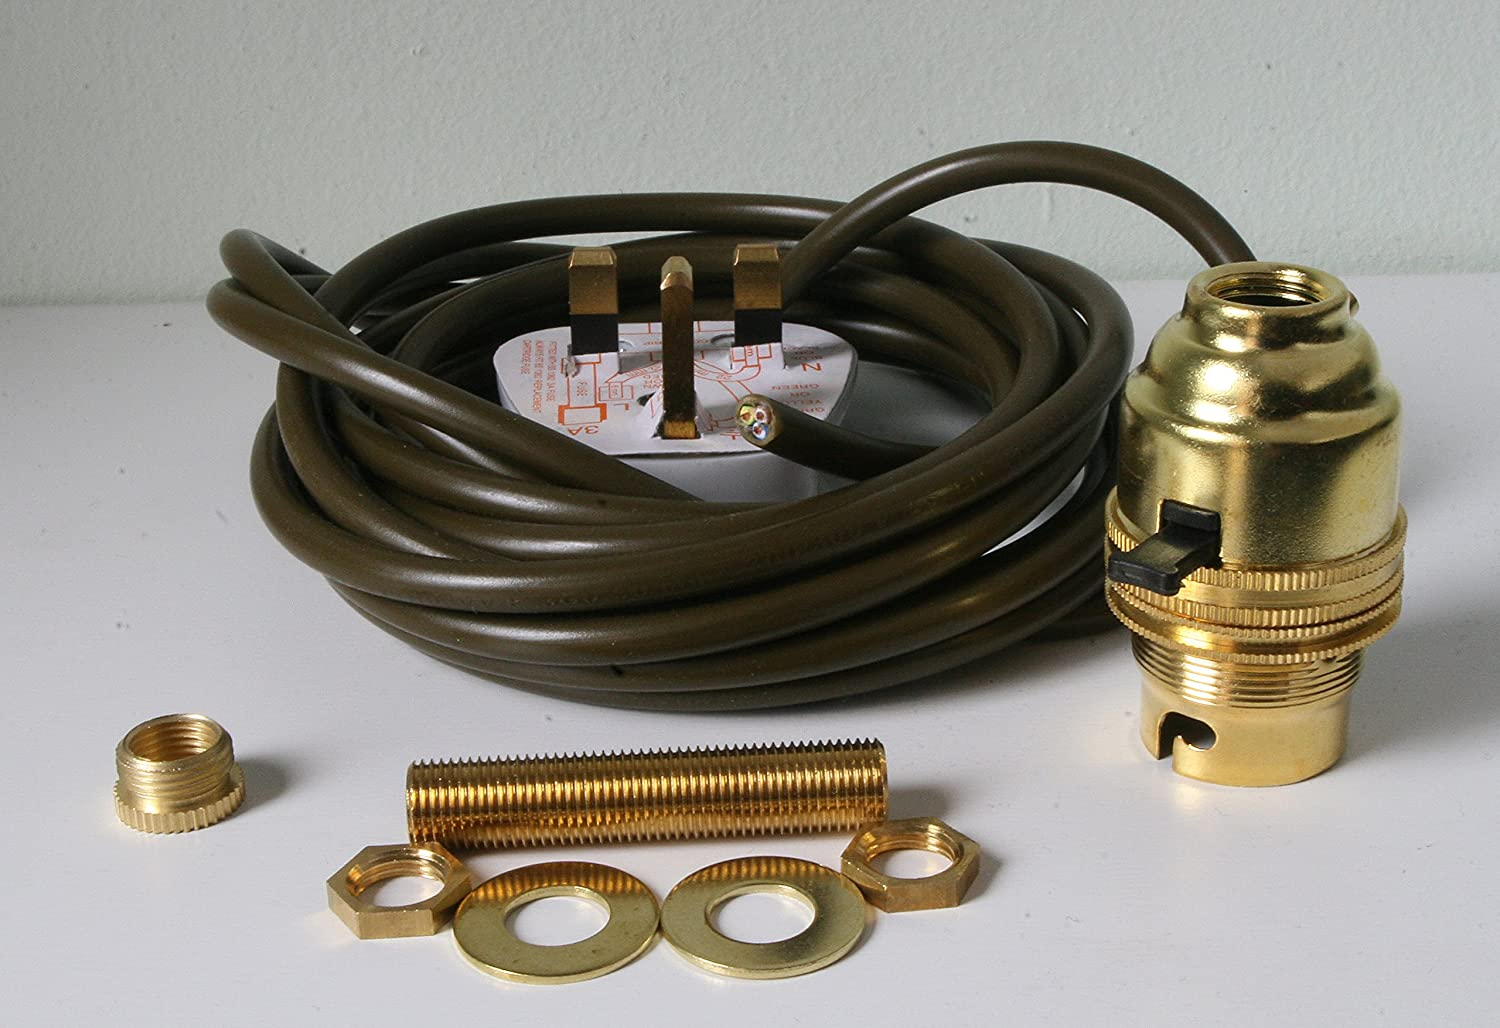 Brass switched lamp holder kit bc fitting cw 10mm thread plug and brass switched lamp holder kit bc fitting cw 10mm thread plug and 3 metres of wire amazon lighting greentooth Image collections